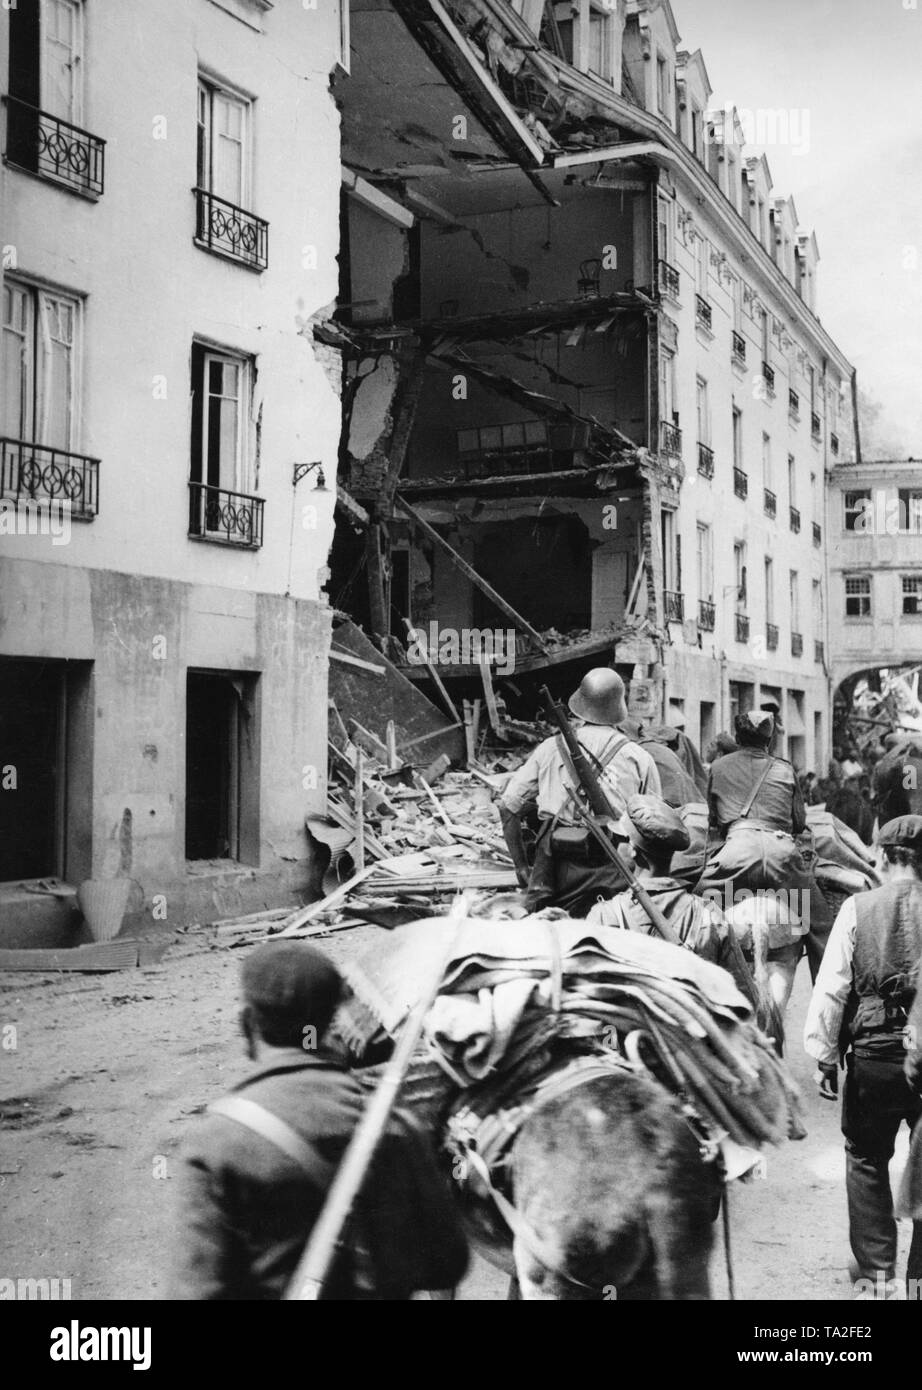 PhotoofSpanish nationalsoldiers when entering the captured Santander, Cantabria, Spanish Atlantic coast on August 27, 1937. In the foreground, armed soldiers andpack animalswith carabiners. Two soldiers ride on donkeys. In the background, a residential house, presumablypartly demolishedby a bombshell. - Stock Image